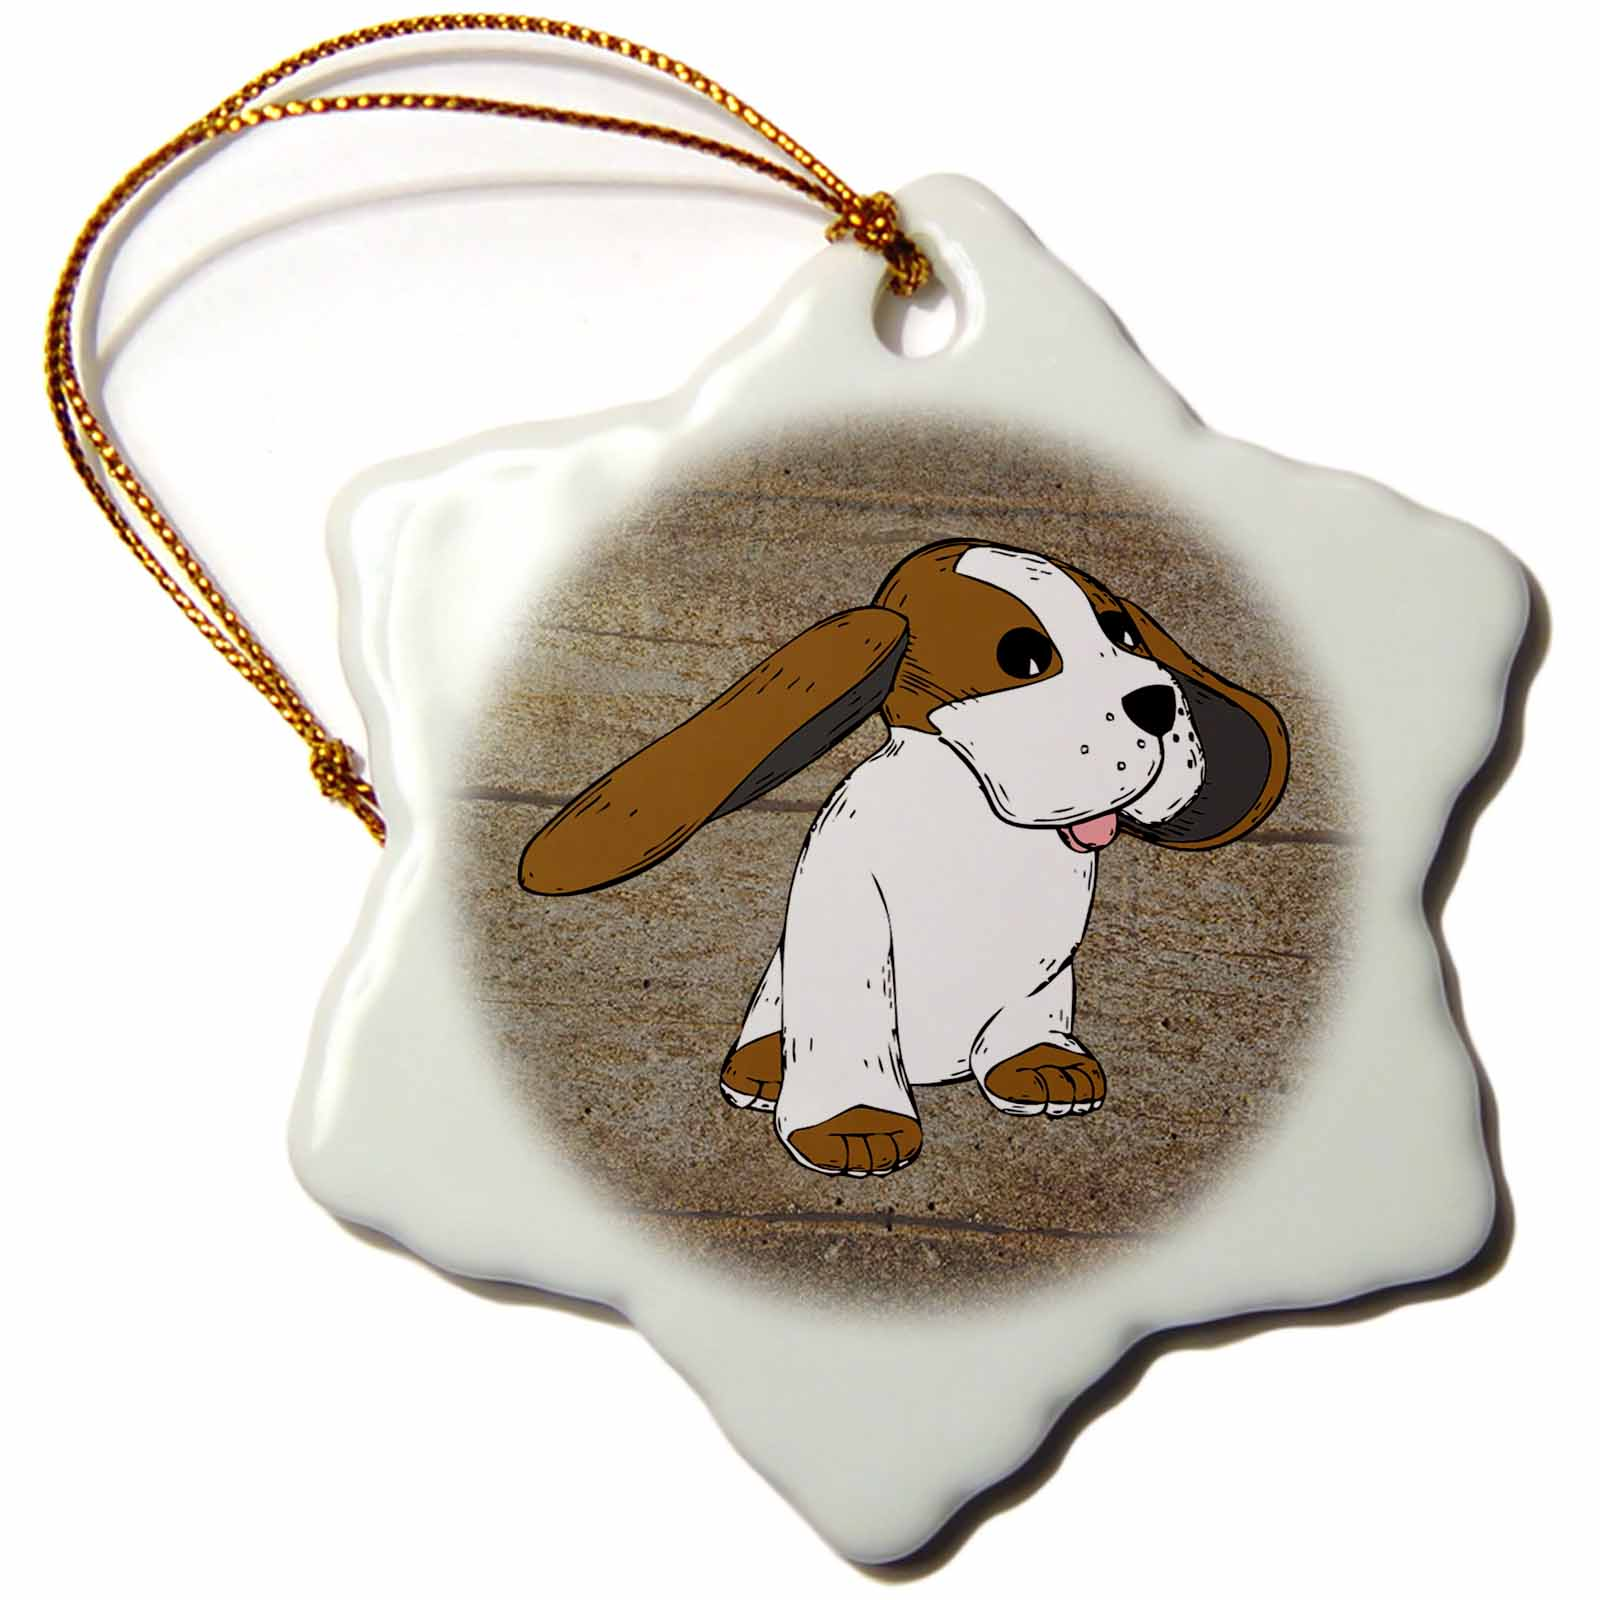 3dRose Image of Cartoon Beagle Dog On Wood, Snowflake Ornament, Porcelain, 3-inch